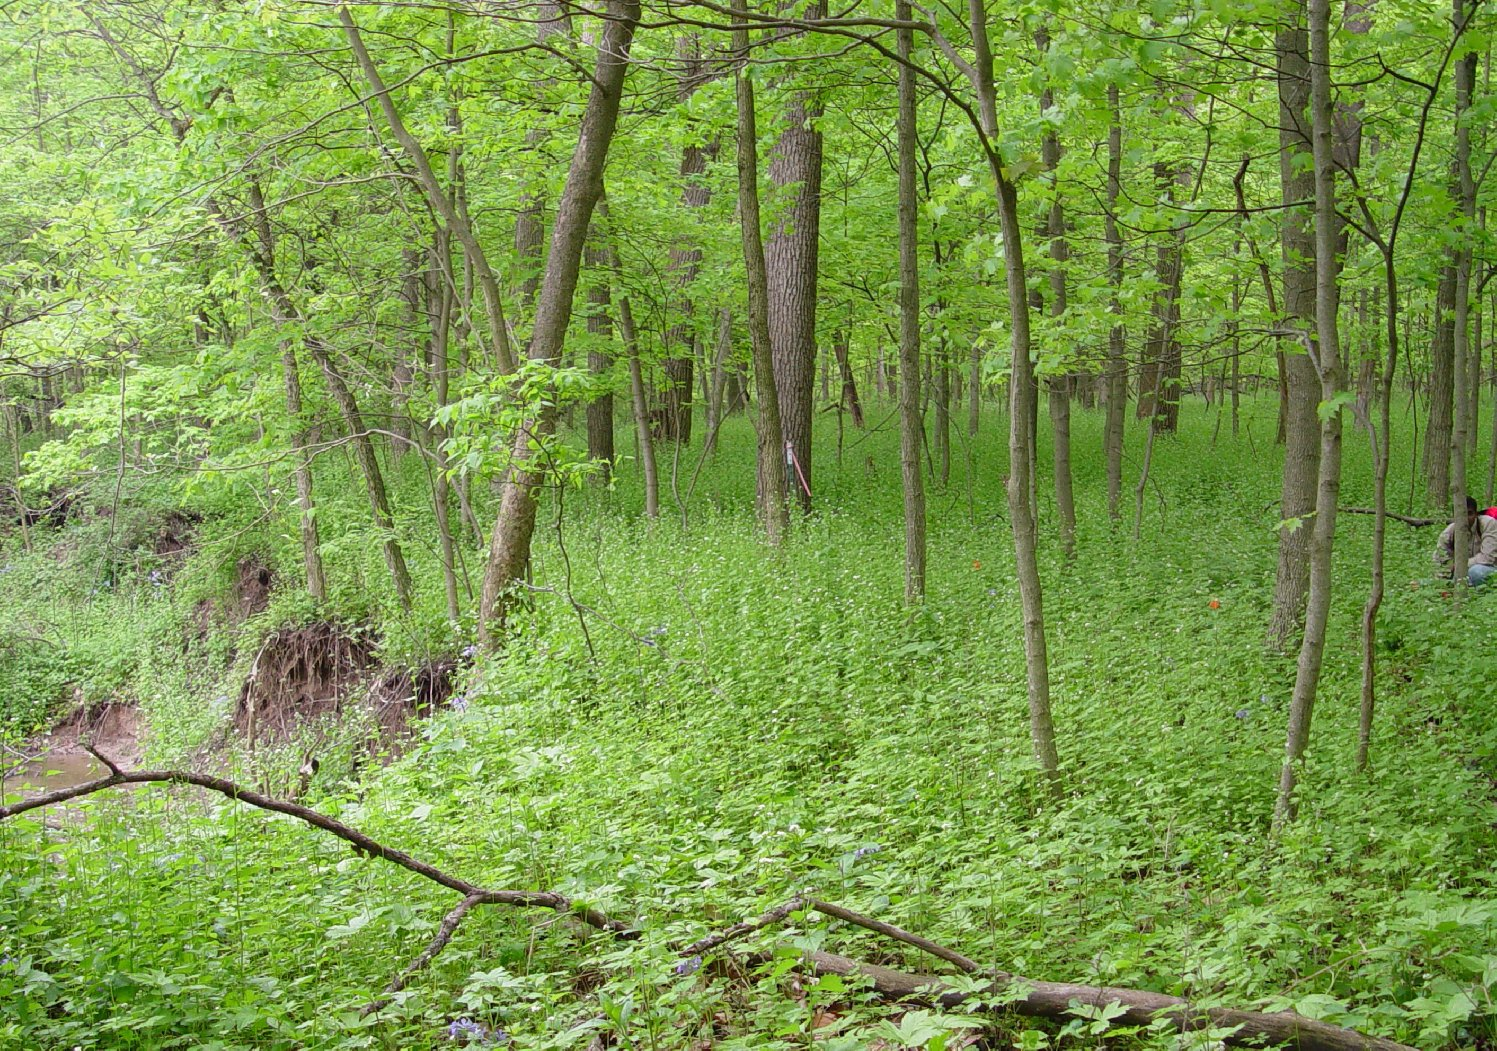 Garlic mustard is crowding out the seedlings of the next generation of trees near a stream bank in Illinois. Photo courtesy of Adam Davis, University of Illinois.